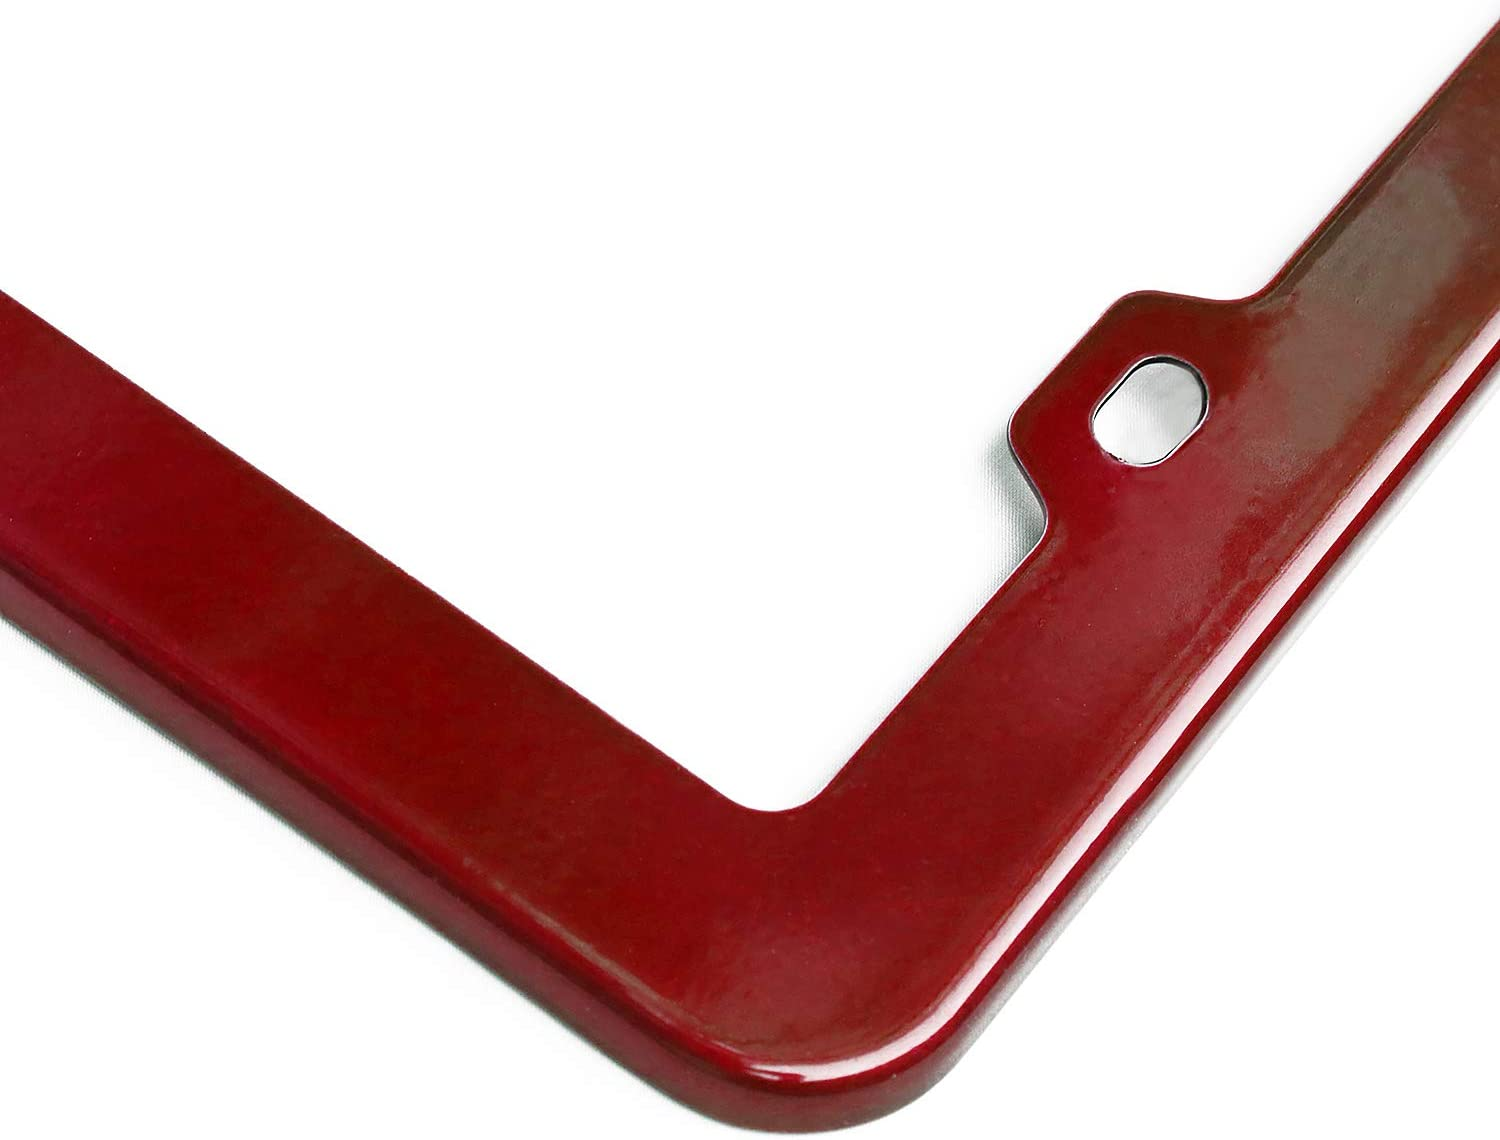 creathome 201 Stainless Steel License Plate Frames with Shining Red Color